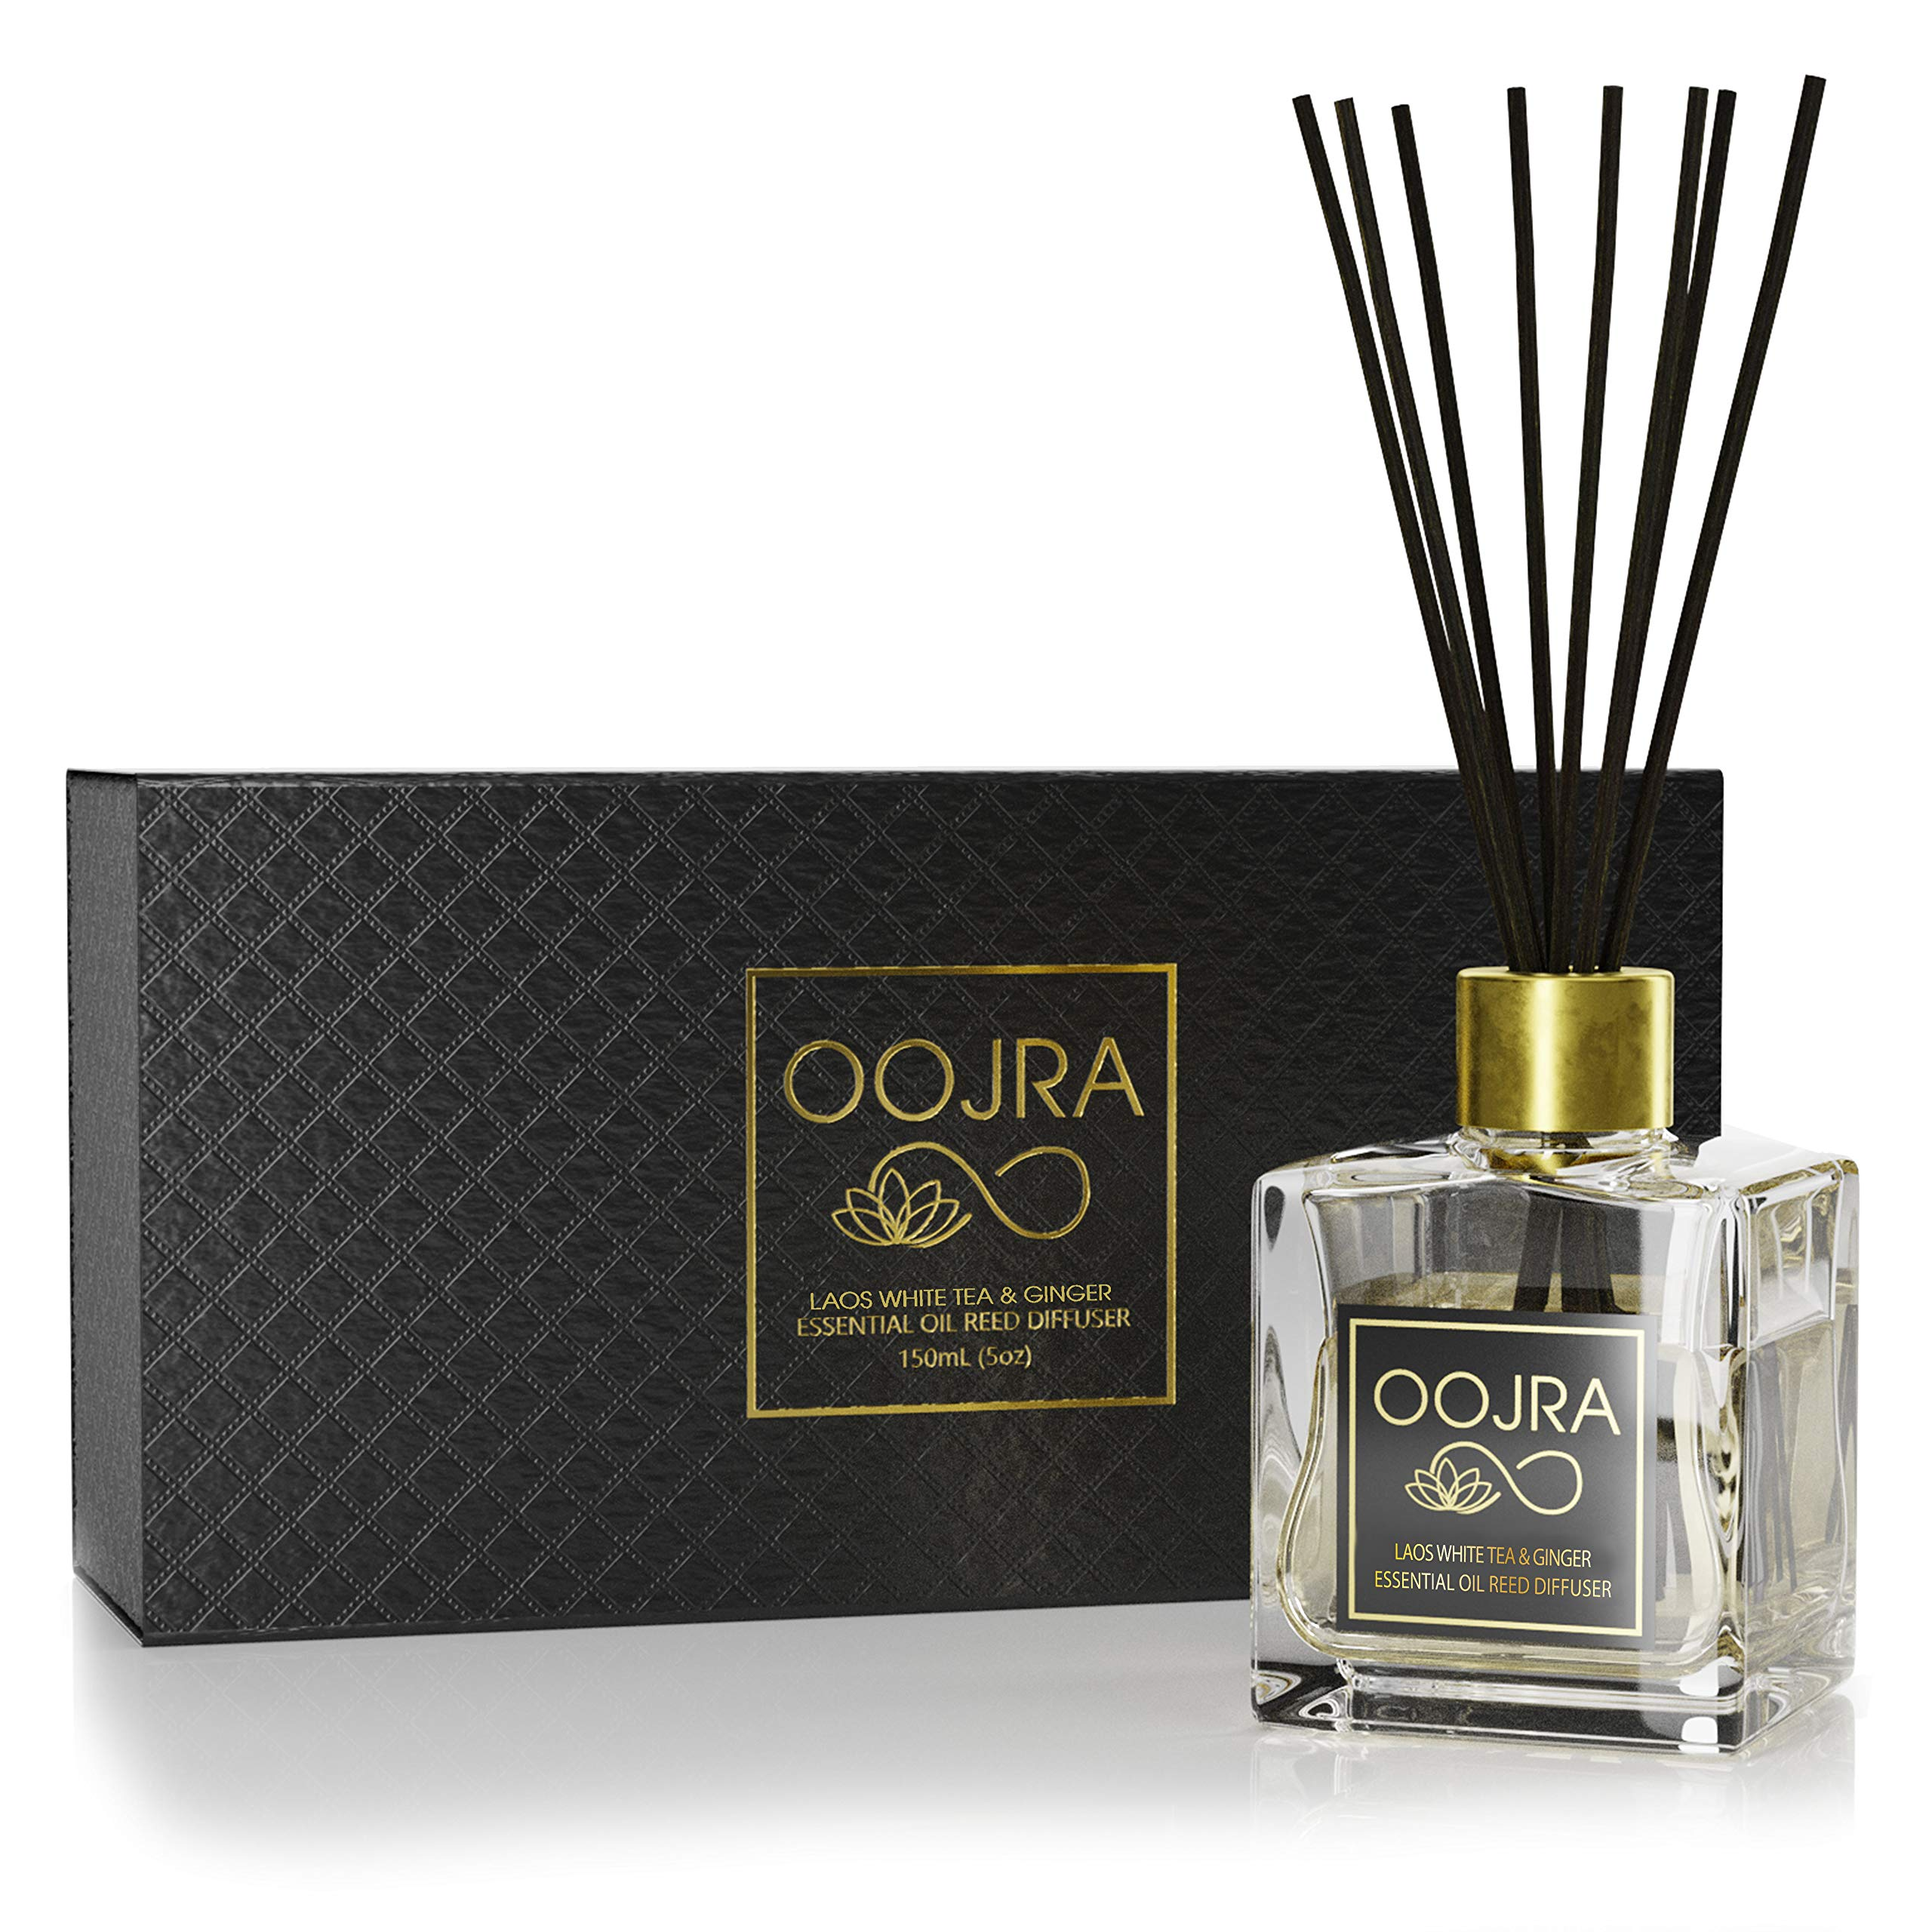 OOJRA Laos White Tea and Ginger Essential Oil Reed Diffuser Gift Set: Glass Bottle, Reed Sticks, Natural Scented Long Lasting Fragrance Oil (3+ Months 5 oz) for Aromatherapy and Air Freshener by OOJRA